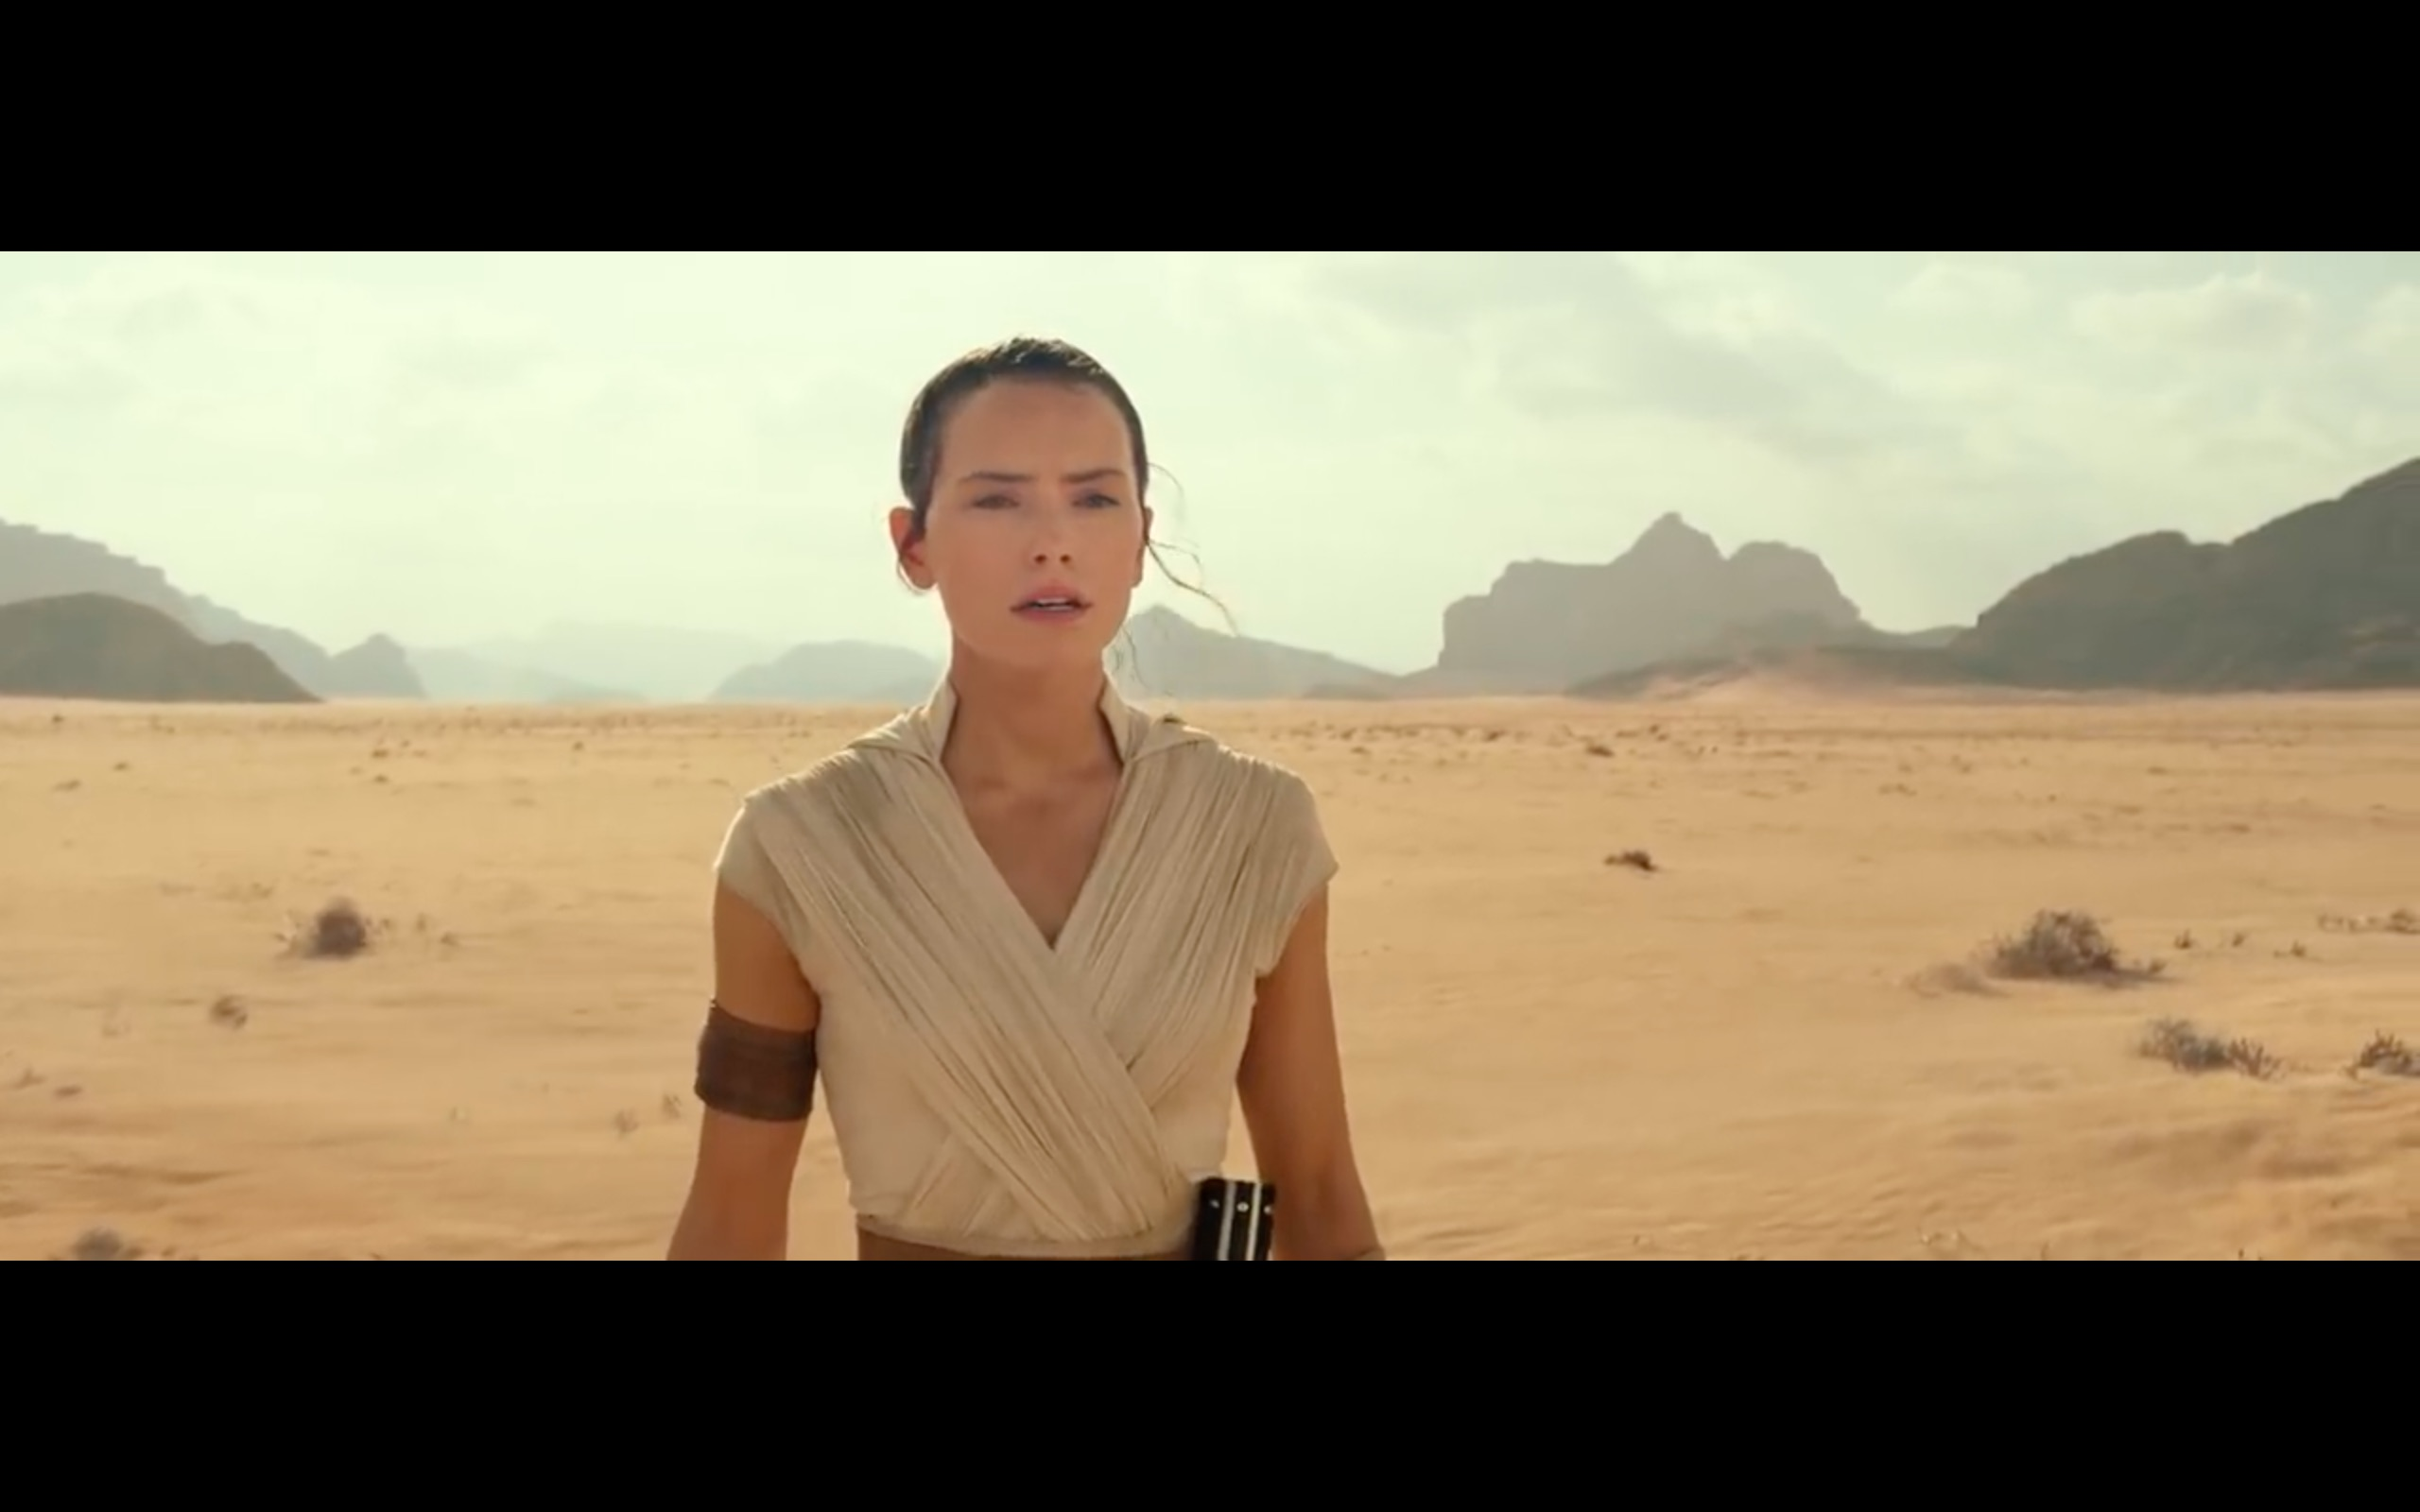 New The Rise of Skywalker Trailer